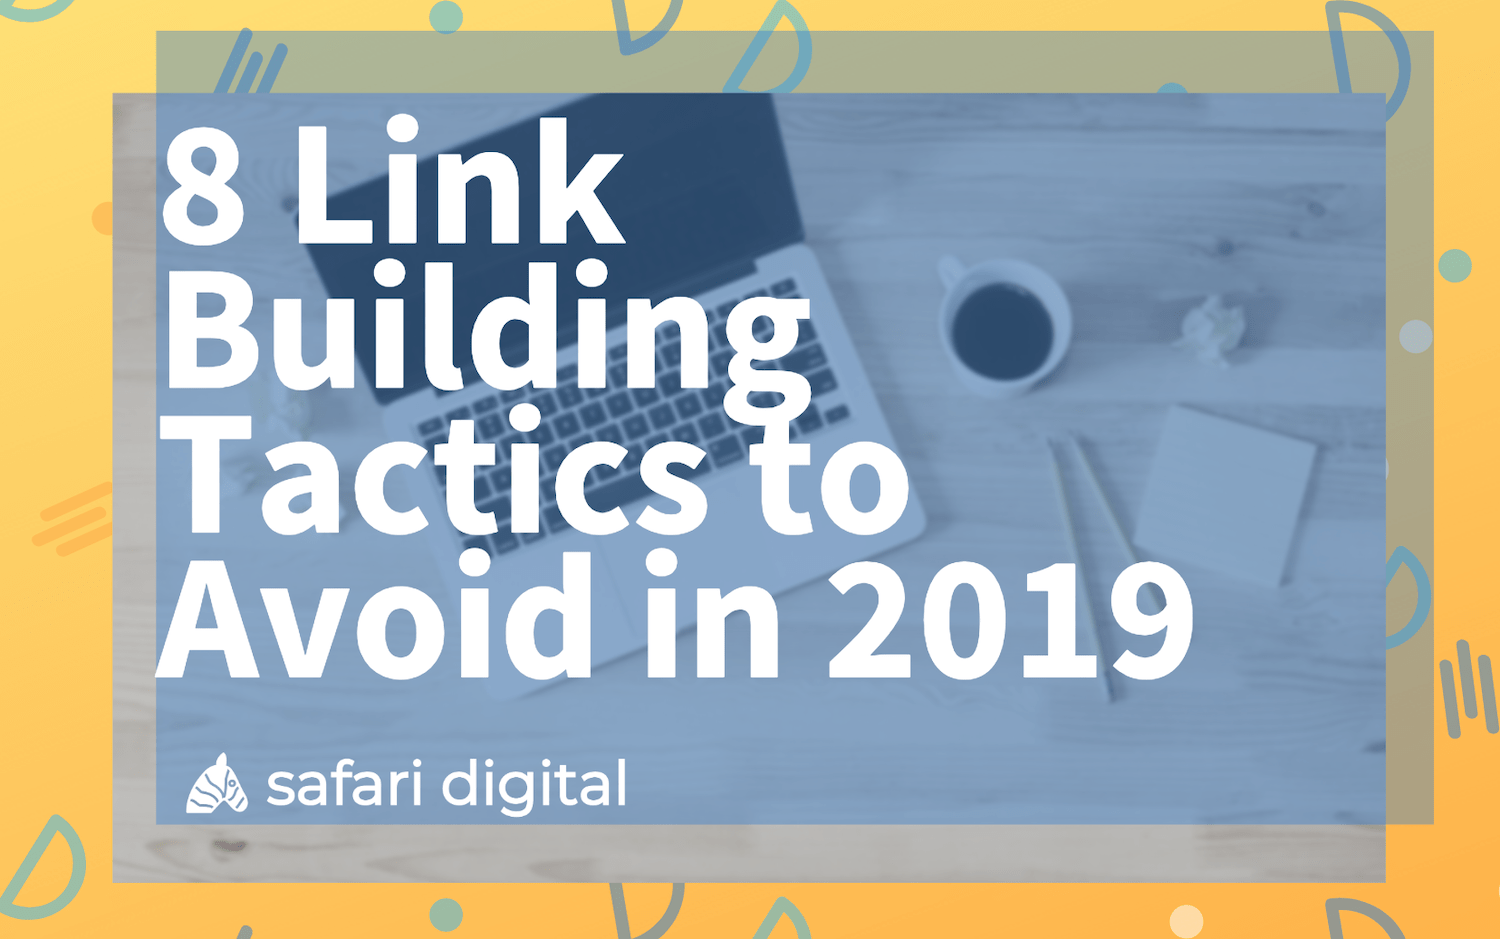 8 link building tactics to avoid in 2019 banner image Large